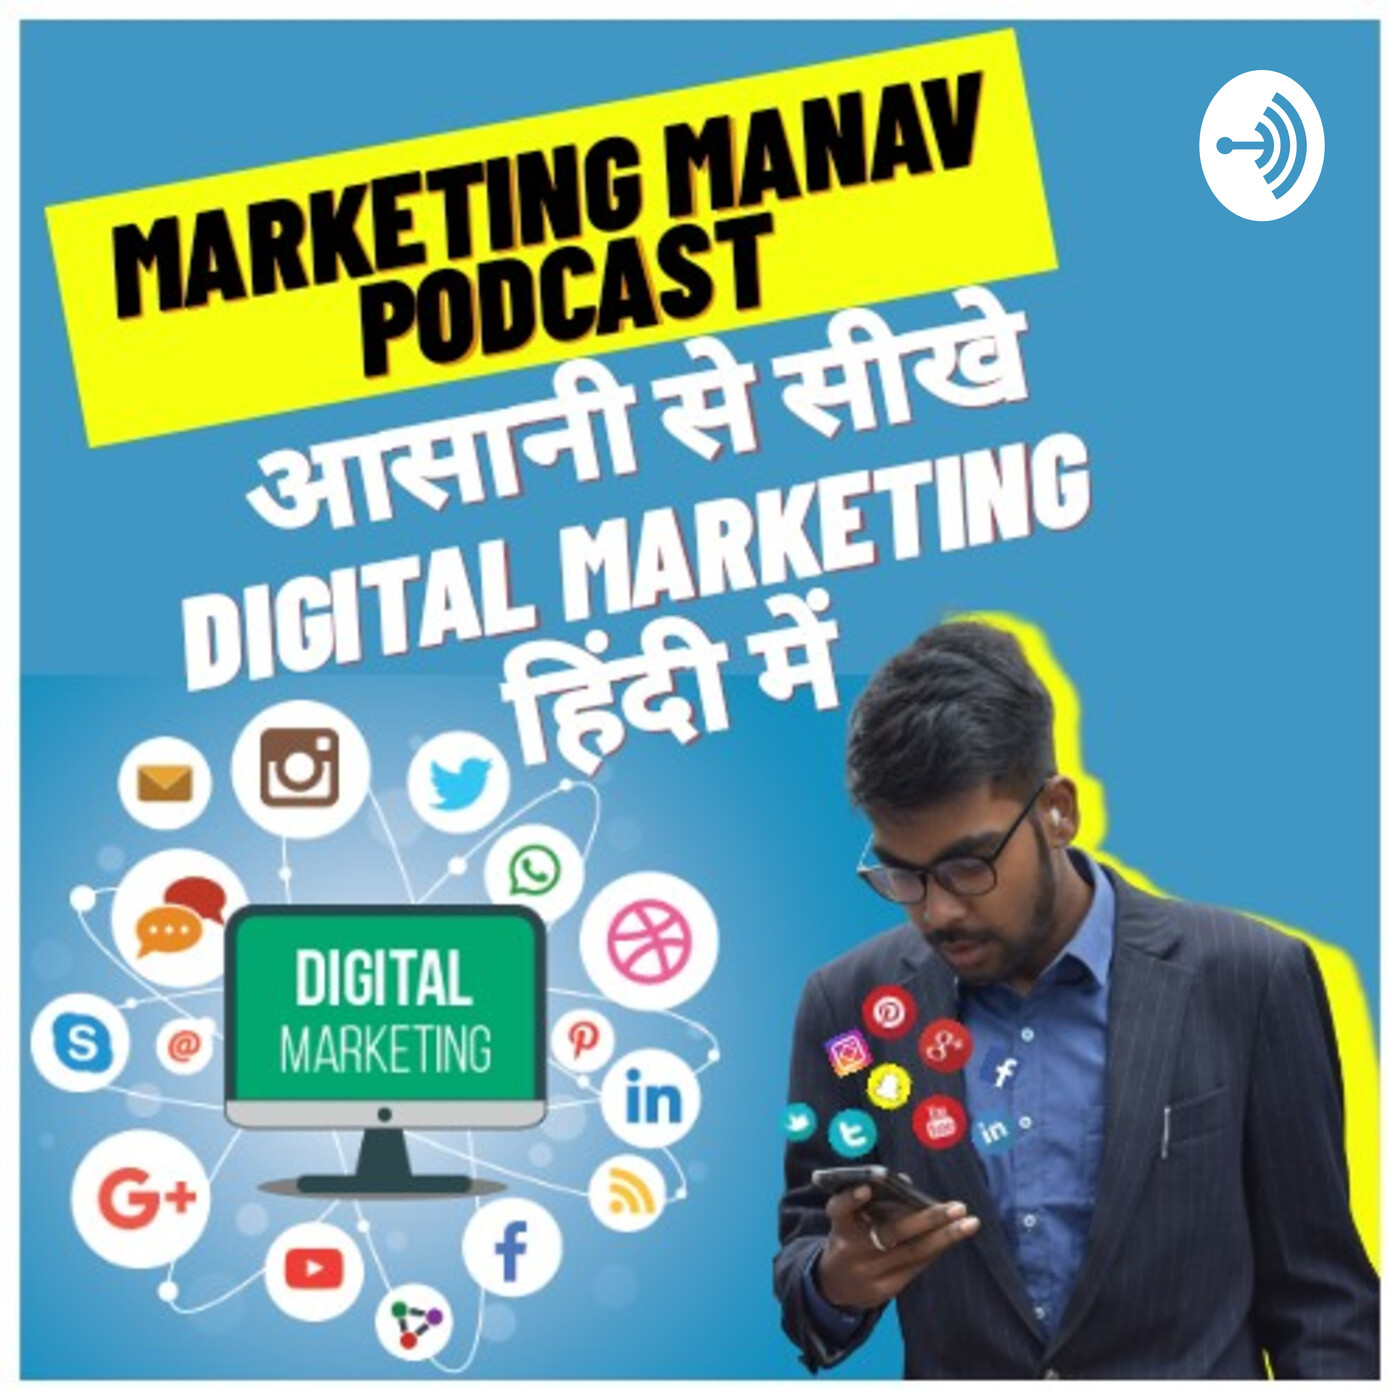 Marketing Manav Podcast | Digital Marketing Podcast In Hindi (Trailer)